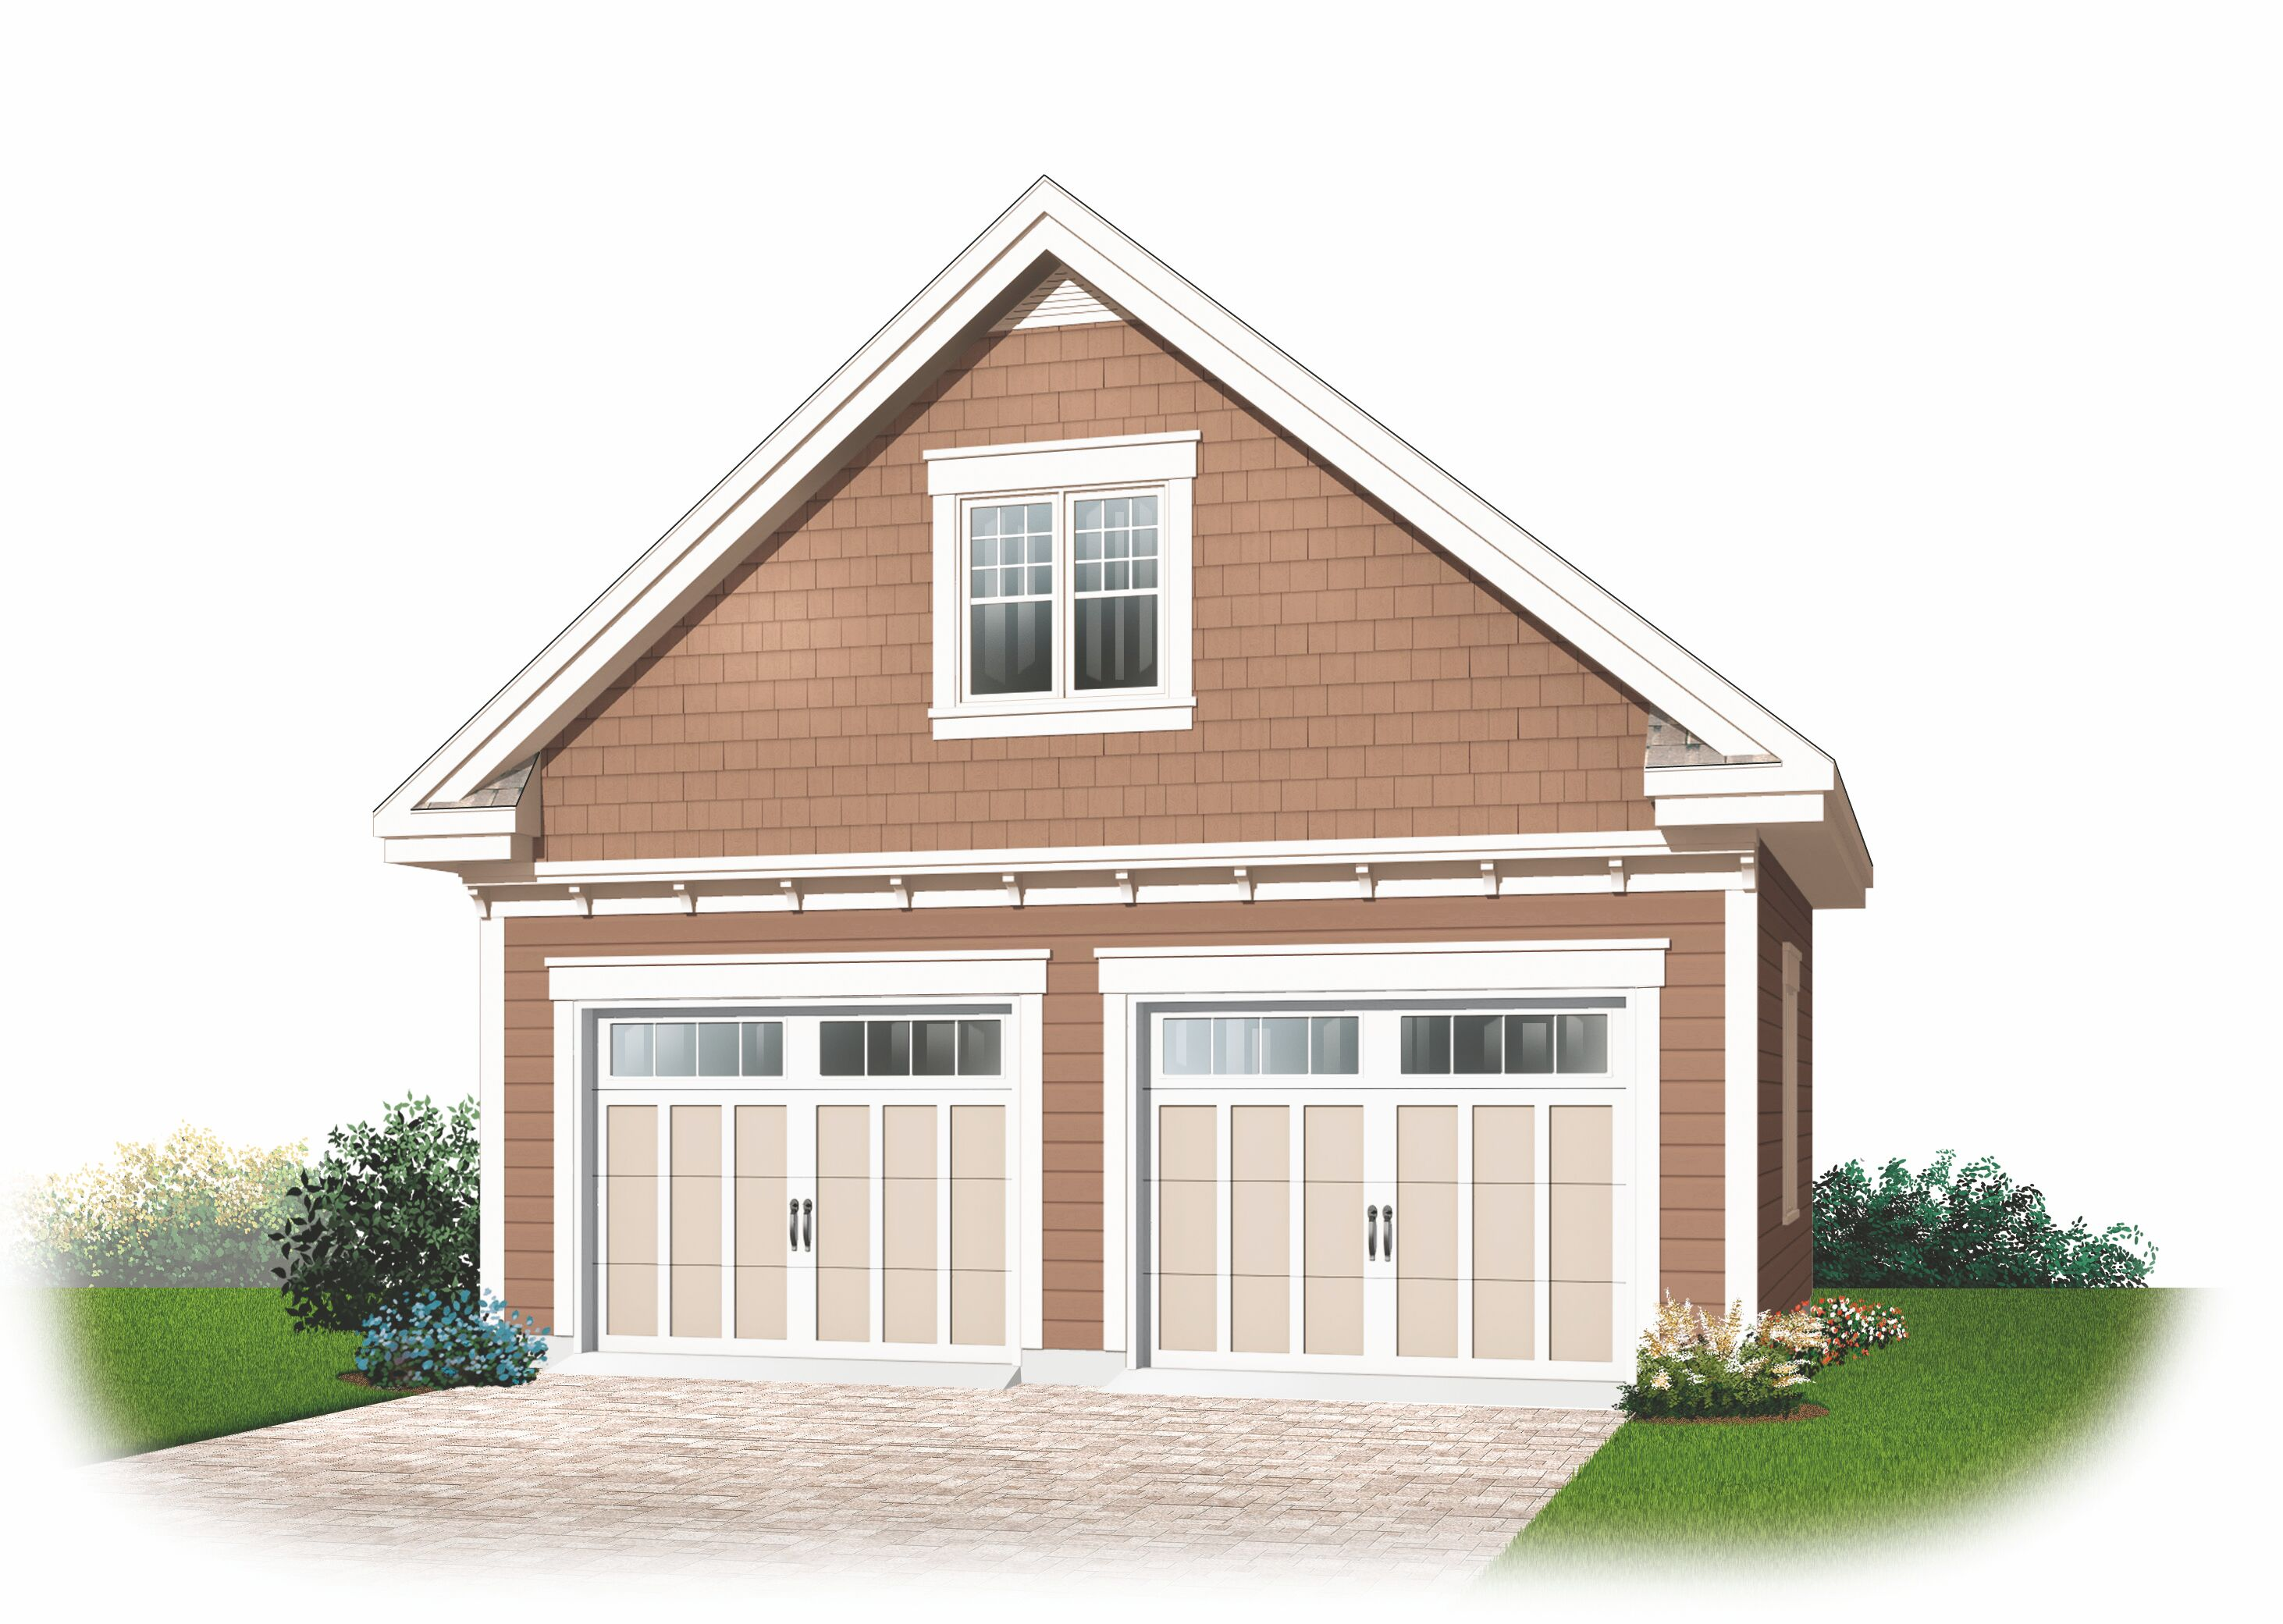 Garage Plans With Loft And House Plans From Design